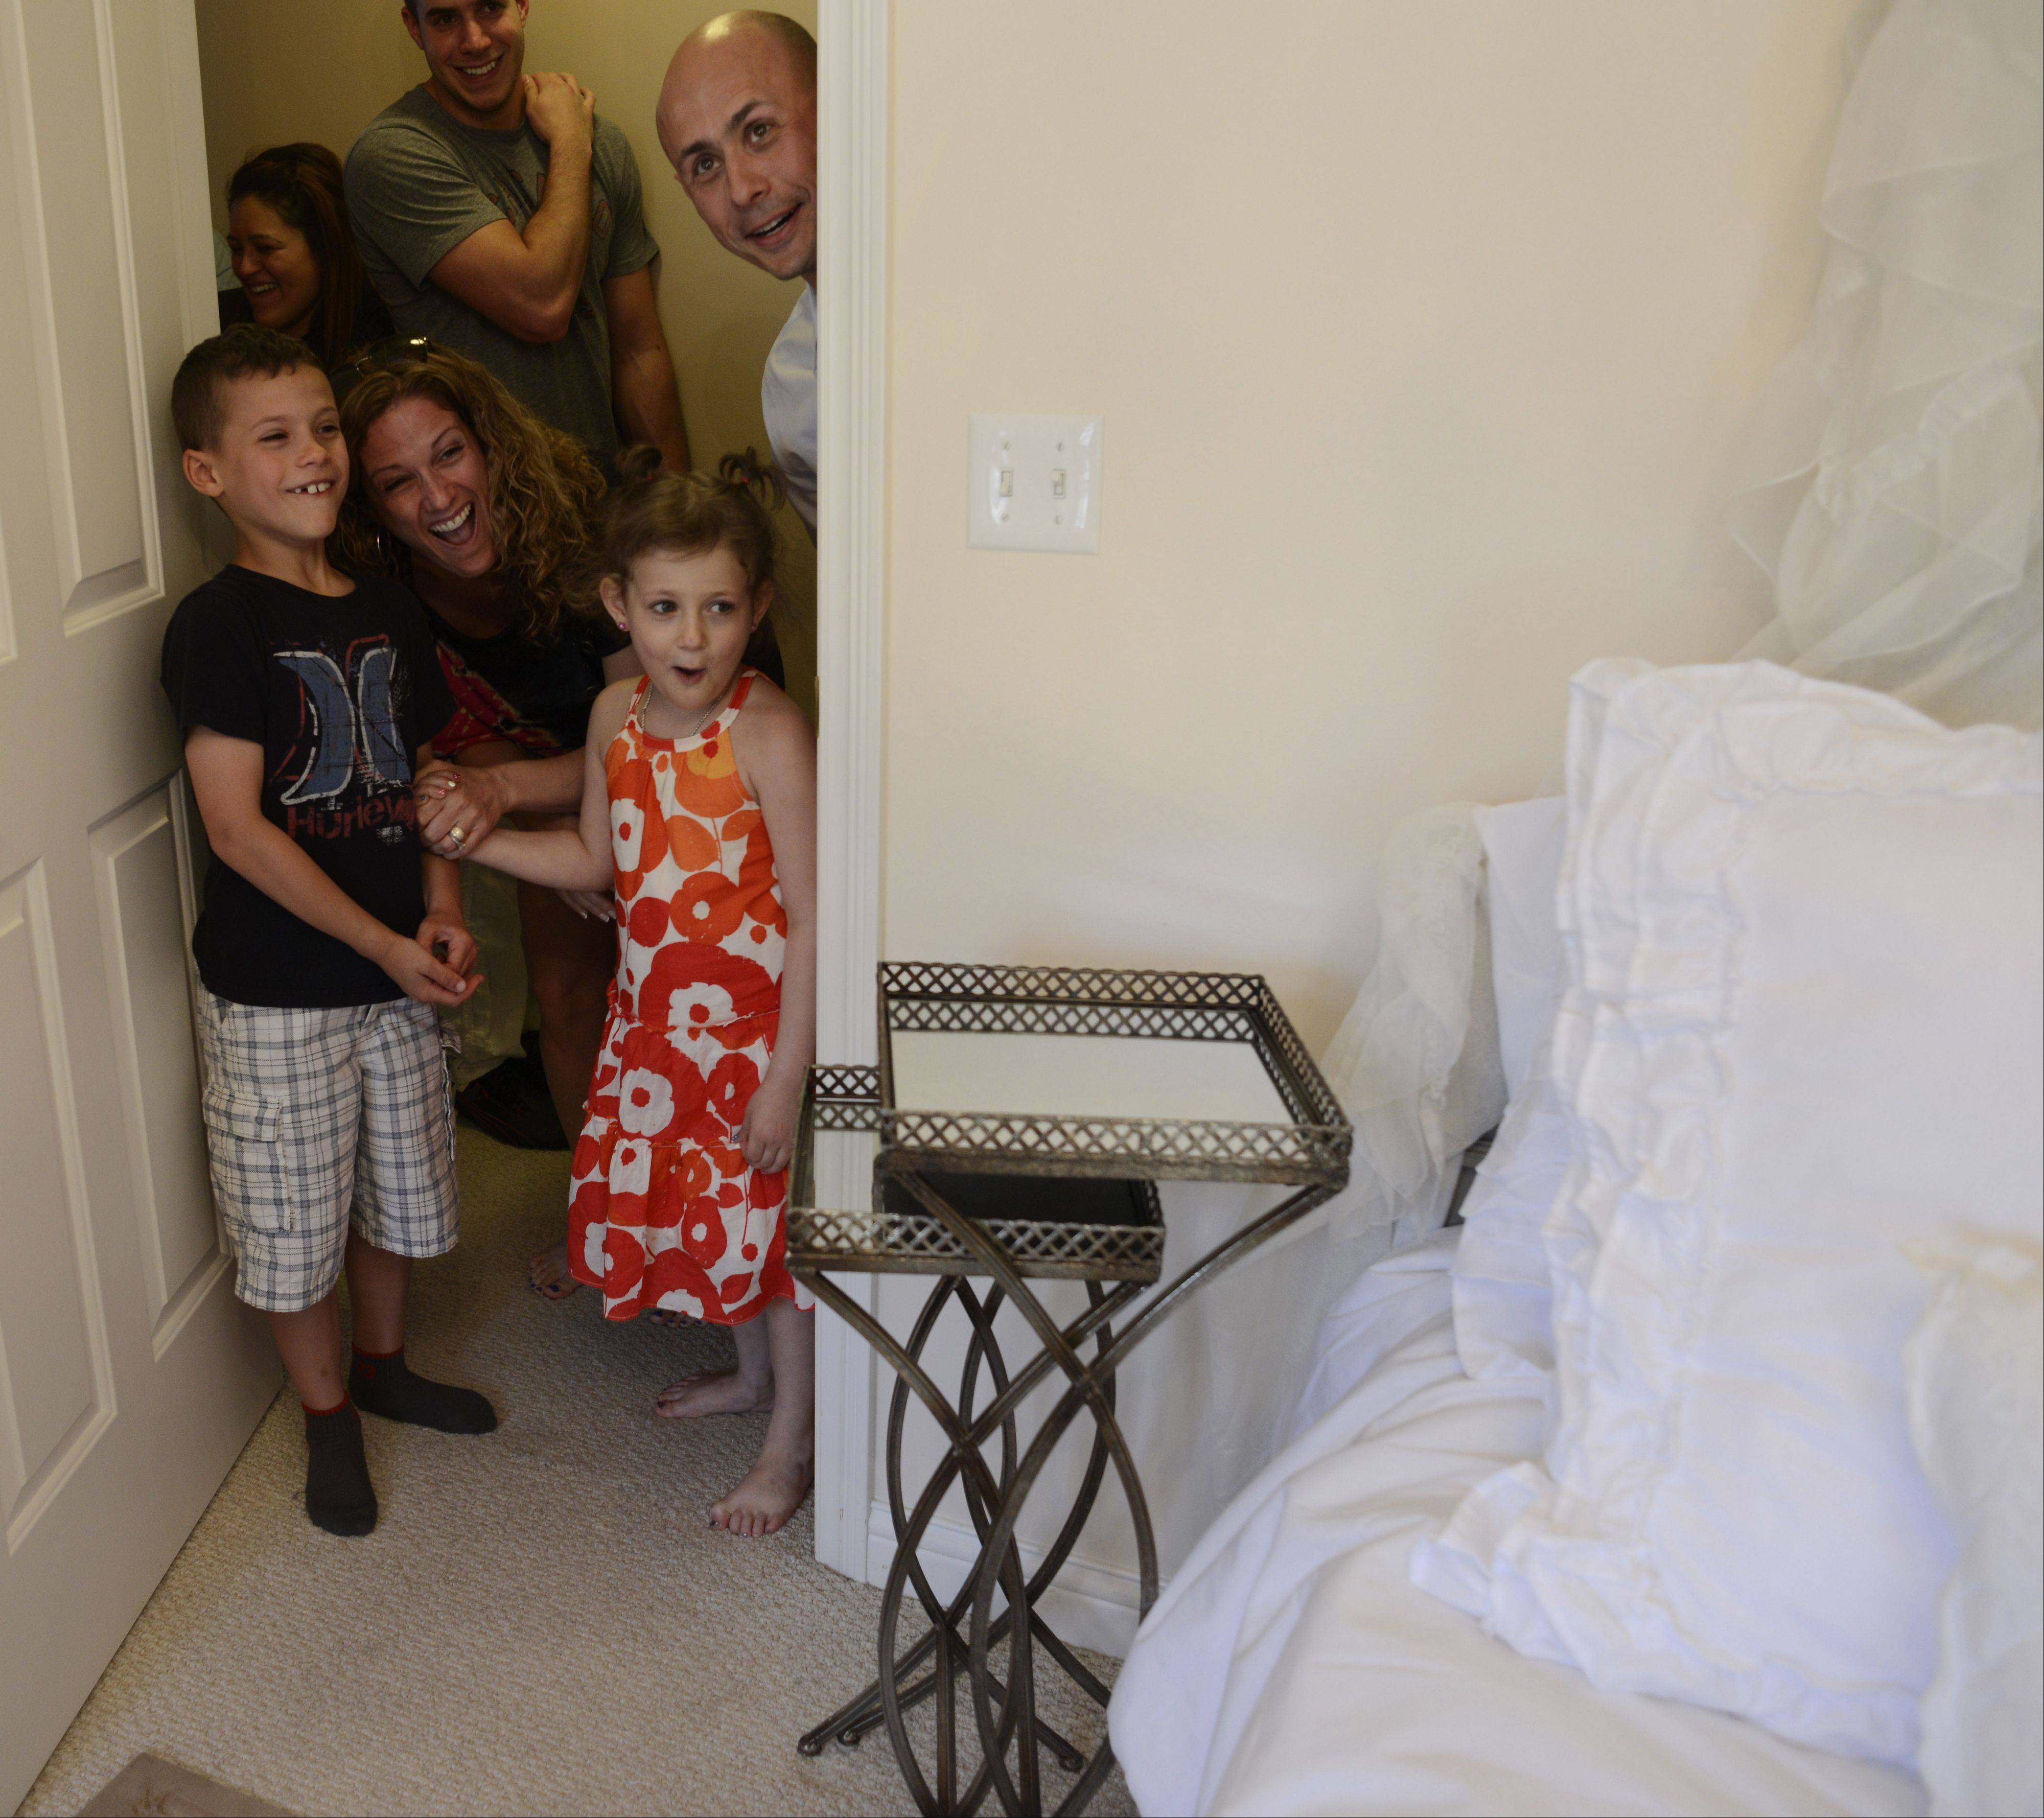 Kennedy Khalimsky, 6, of Palatine checks out her bedroom makeover provided by the new Chicago-area chapter of Special Spaces National. With her are her brother, Maddox, 8, her mom, Edan Gelt, and her dad, Gene Khalimsky, right.